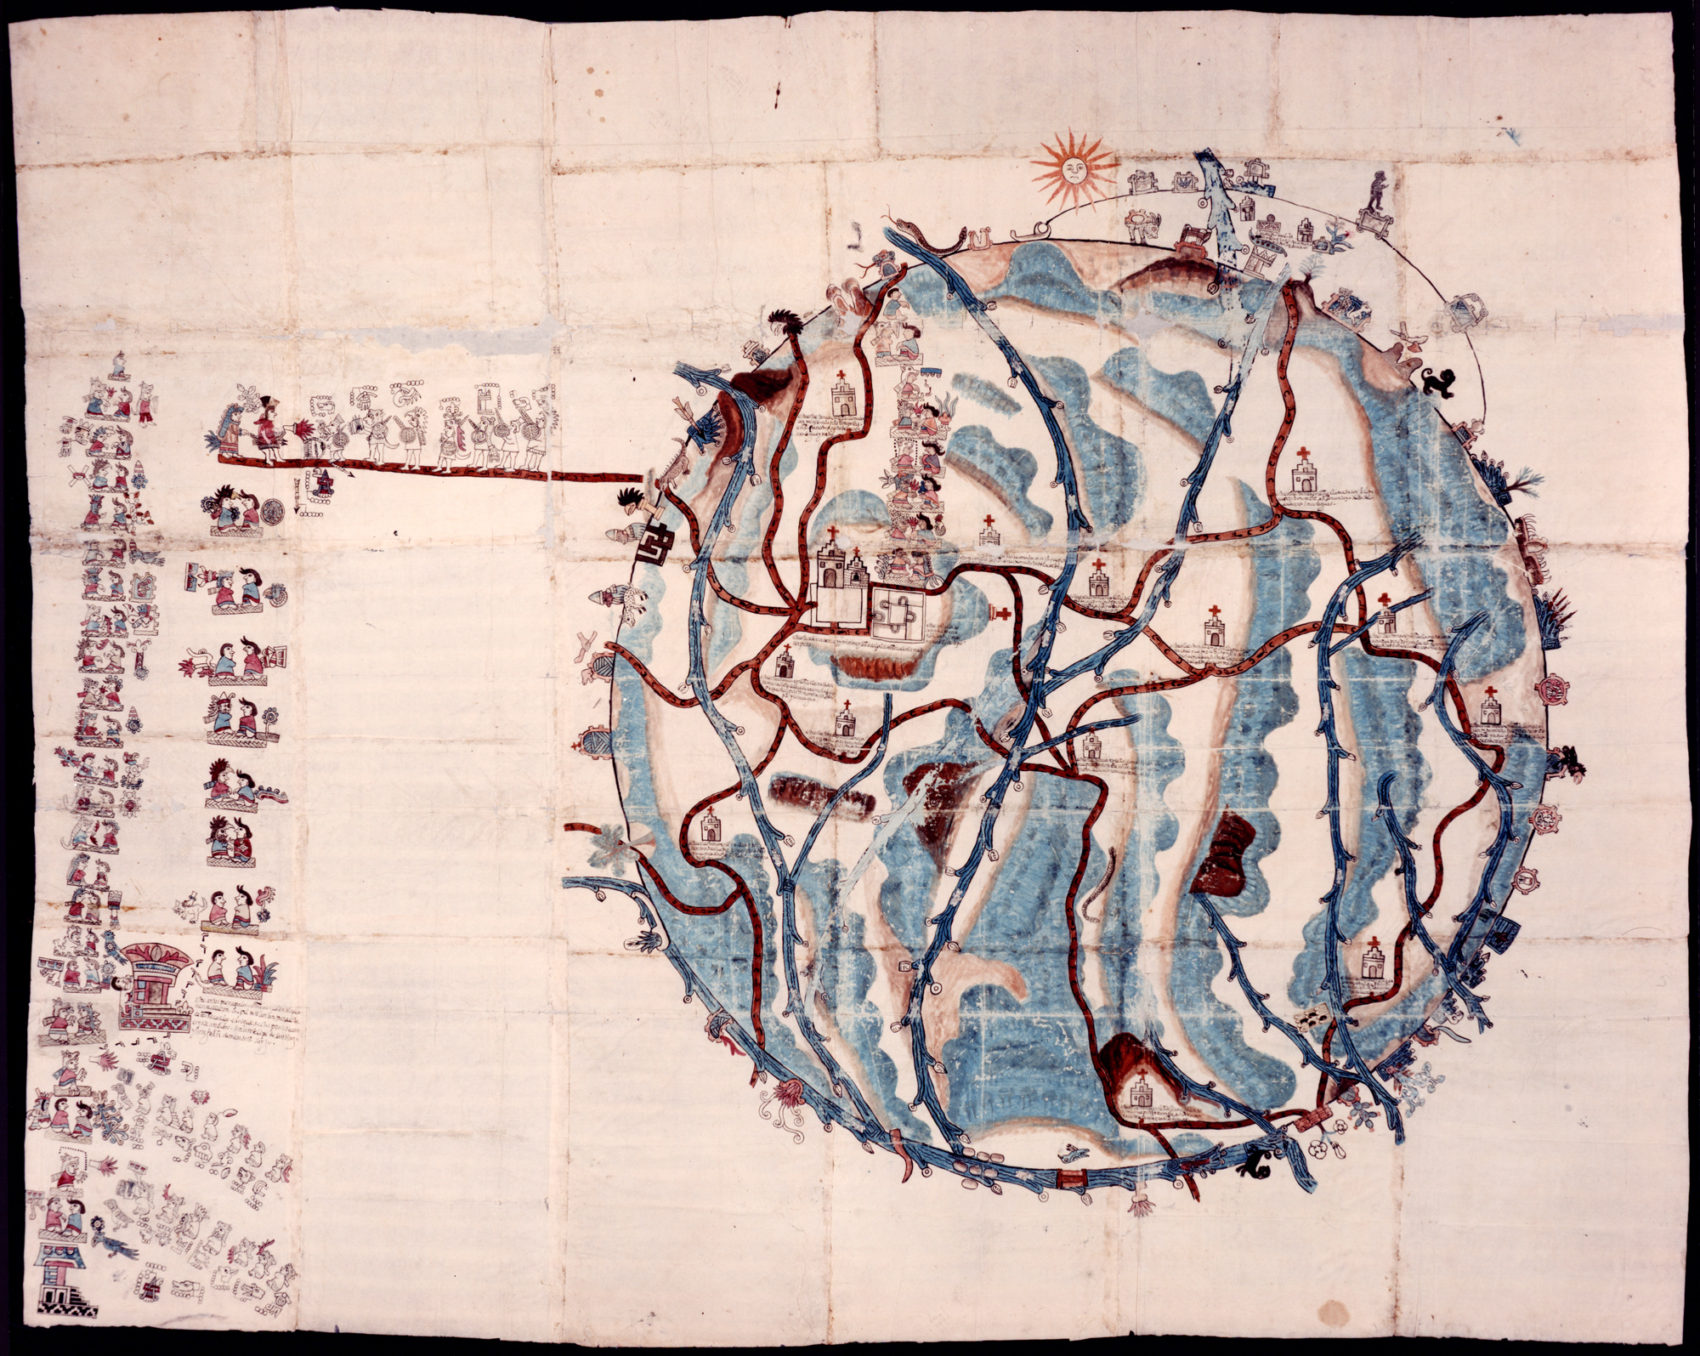 Watercolor map created in 1580. The map is organized into a circle with marked waterways, roads, and buildings. On the far left side a column of figures represent ten generations of local rulers including a series of footprints to indicate a marriage alliance with a neighboring town.